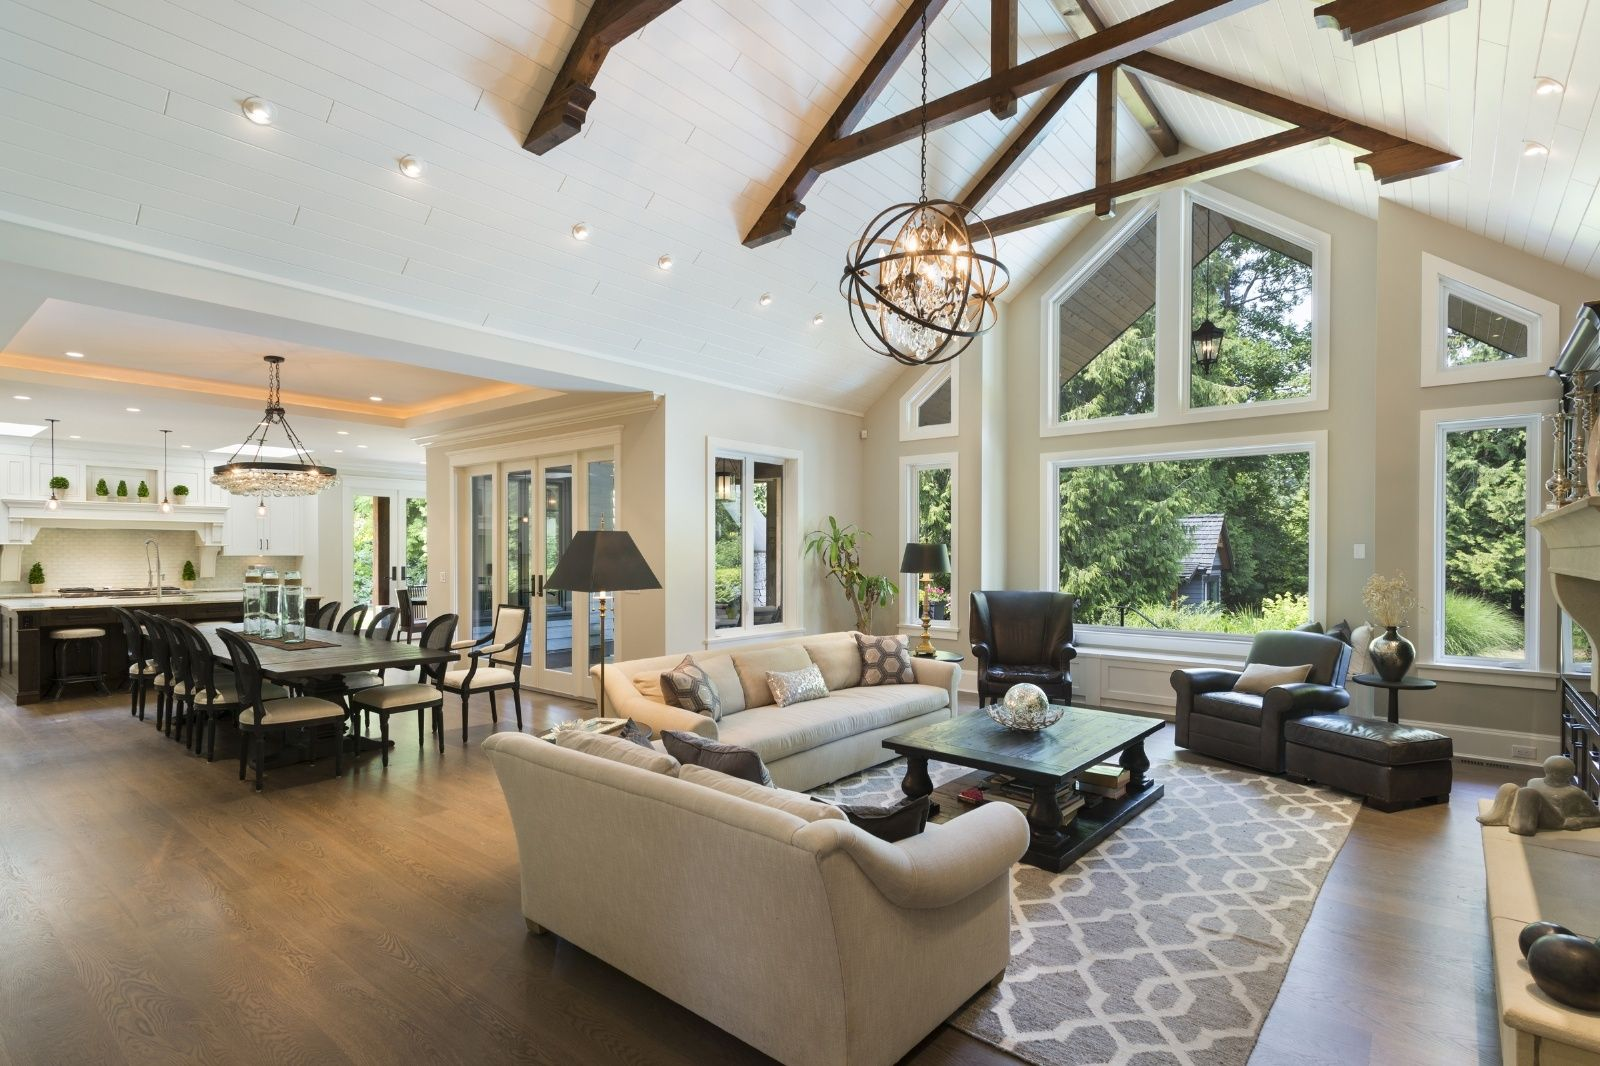 30 Best Open Floor Plans For Life Without Walls | Ceilings, Change ...